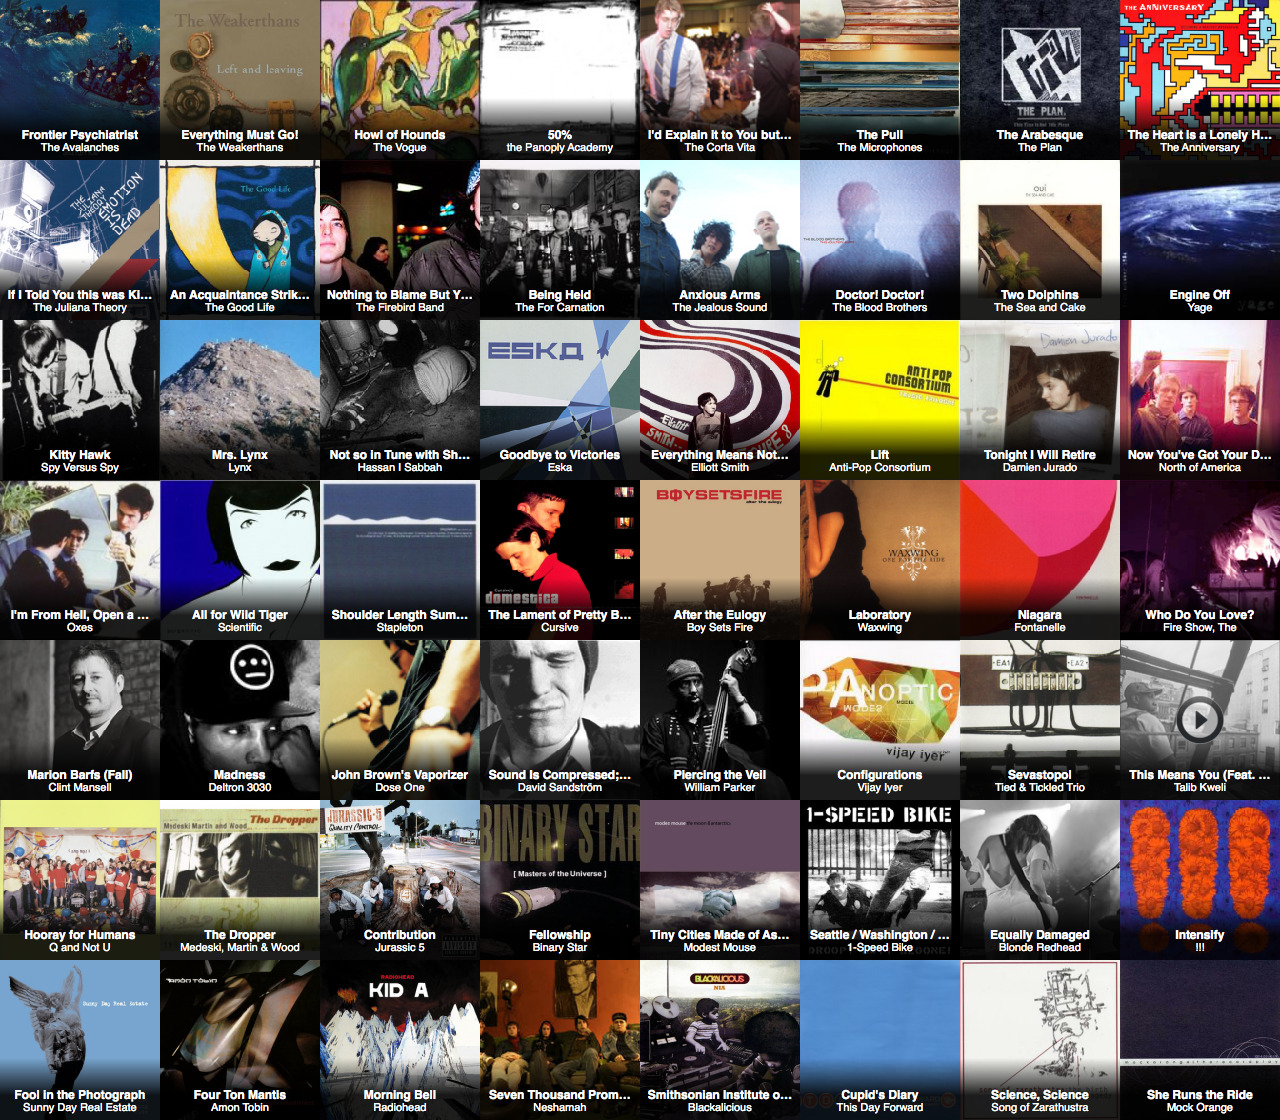 My top 113 LPs of 2000. I started doing my Year-In-A-Month series again this year in February. This year I'm going backwards from 2000. Expect it to get 'heavier' and 'heavier' from here on out — although there will be more than a few gems you can appreciate if you're not 'heavy' inclined. Guaranteed. Holler if you want to know more or hear something specific…  !!! (2000)!!! 1-Speed Bike (2000) Droopy Butt Begone! 90 Day Men (2000) (It (Is) It) Critical Band Amon Tobin (2000) Supermodified Anniversary, The (2000) Designing a Nervous Breakdown Anti-Pop Consortium (2000) Tragic Epilogue As Friends Rust (2000) The Fists of Time, Doghouse CDep (Reissue) Avalanches, The (2000) Since I Left You Bahamadia (2000) BB Queen CDep Binary Star (2000) Masters of the Universe Blackalicious (2000) Nia Blonde Redhead (2000) Melody of Certain Damaged Lemons (2002 Reissue) Blood Brothers, The (2000) This Adultery is Ripe Blue Skies Burning (2000) Last Leg of My First Race CDep Boy Sets Fire (2000) After the Eulogy Brandtson (2000) Trying to Figure Each Other Out CDep Bright Eyes (2000) Fevers and Mirrors Burnman (2000) Notes for a Catalogue for an Exhibition Califone (2000) Sometimes Good Weather Follows Bad People Camera Obscura (2000) To Change the Shape of the Envelope Catharsis (2000) Passion Centro-Matic (2000) All the Falsest Hearts Can Try Clem Snide (2000) Your Favorite Music Clint Mansell (2000) And Kronos Quartet, Requiem for a Dream O.S.T Corta Vita, The (2000) Communication is Nothing without Feedback CDep Cursive (2000) Domestica Damien Jurado (2000) Ghost of David Dashboard Confessional (2000) The Swiss Army Romance David Grubbs (2000) The Spectrum Between David Sandstrom (2000) As TEXT Deltron 3030 (2000) Deltron 3030 (2008 Remaster) Deluge (2000) Spot in the Shadow Don Caballero (2000) American Don Dose One (2000) And Boom Bip, Circle Dose One (2000) As Themselves, Them (2003 Reissue) Drowningman (2000) How they Light Cigarettes in Prison CDep Drowningman (2000) Rock a